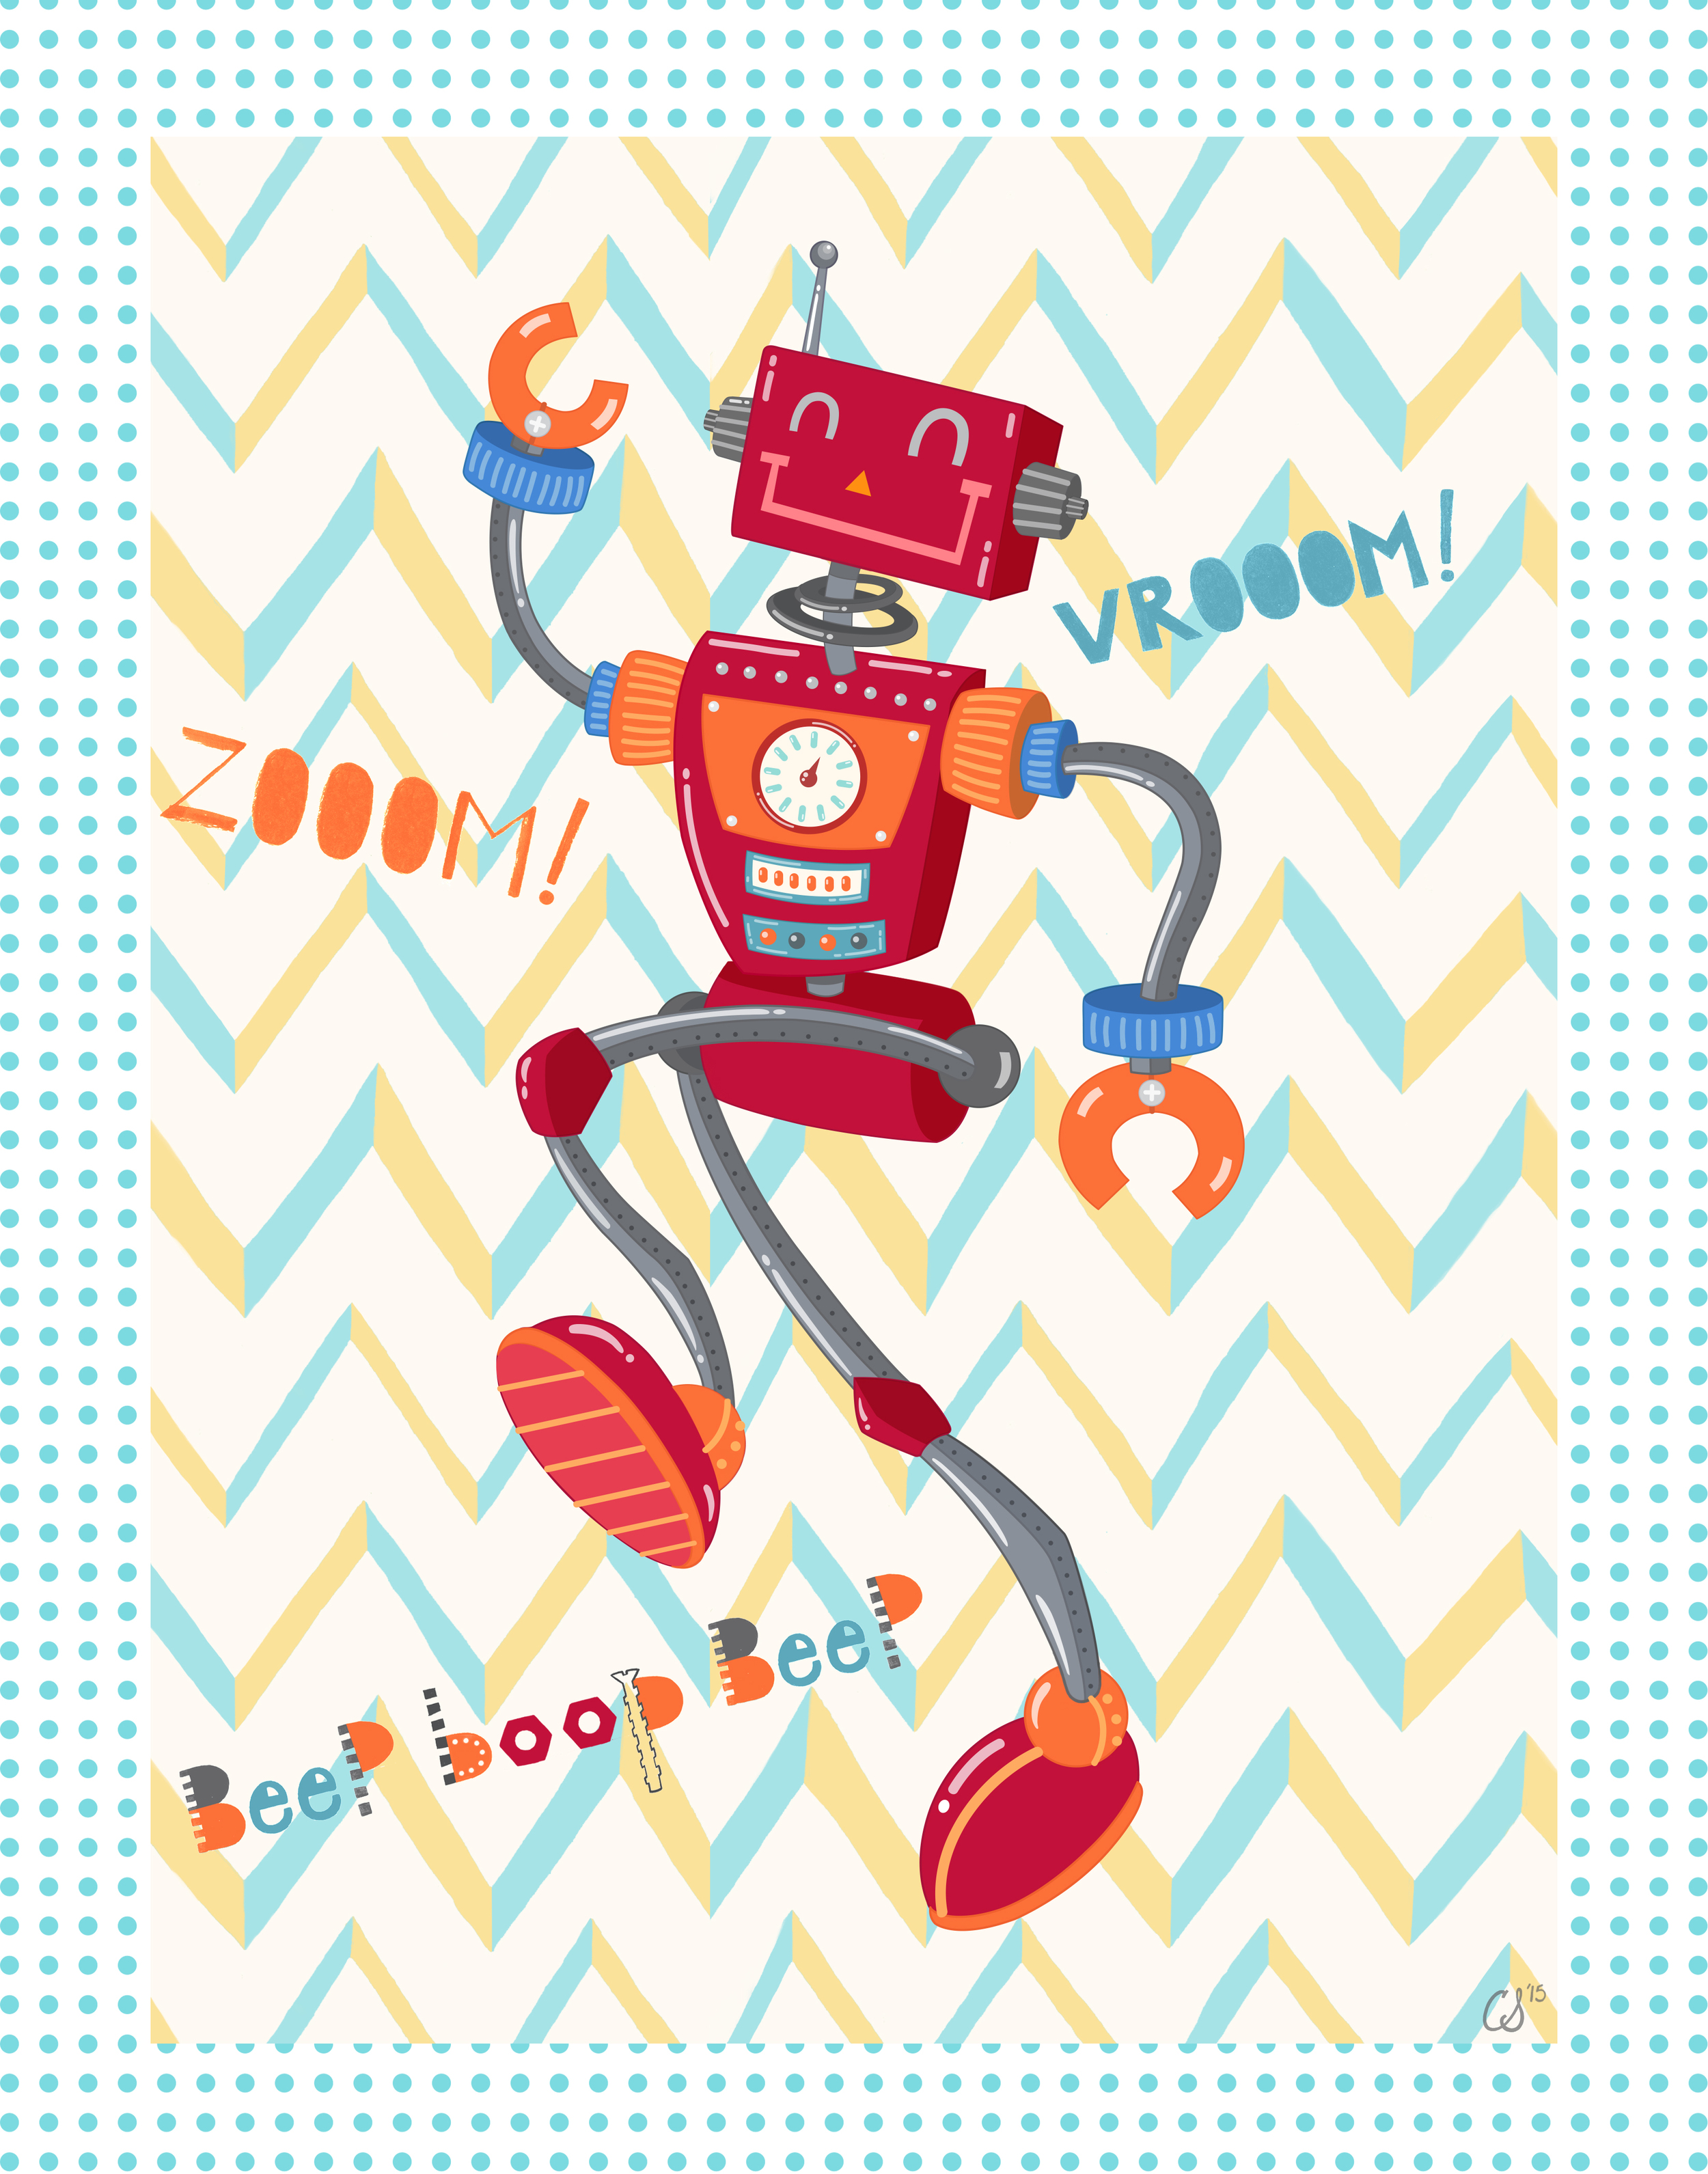 Zoom Robot  image created for Art in Motion.  artinmotion.com .  This image is available for  publishing  purposes.